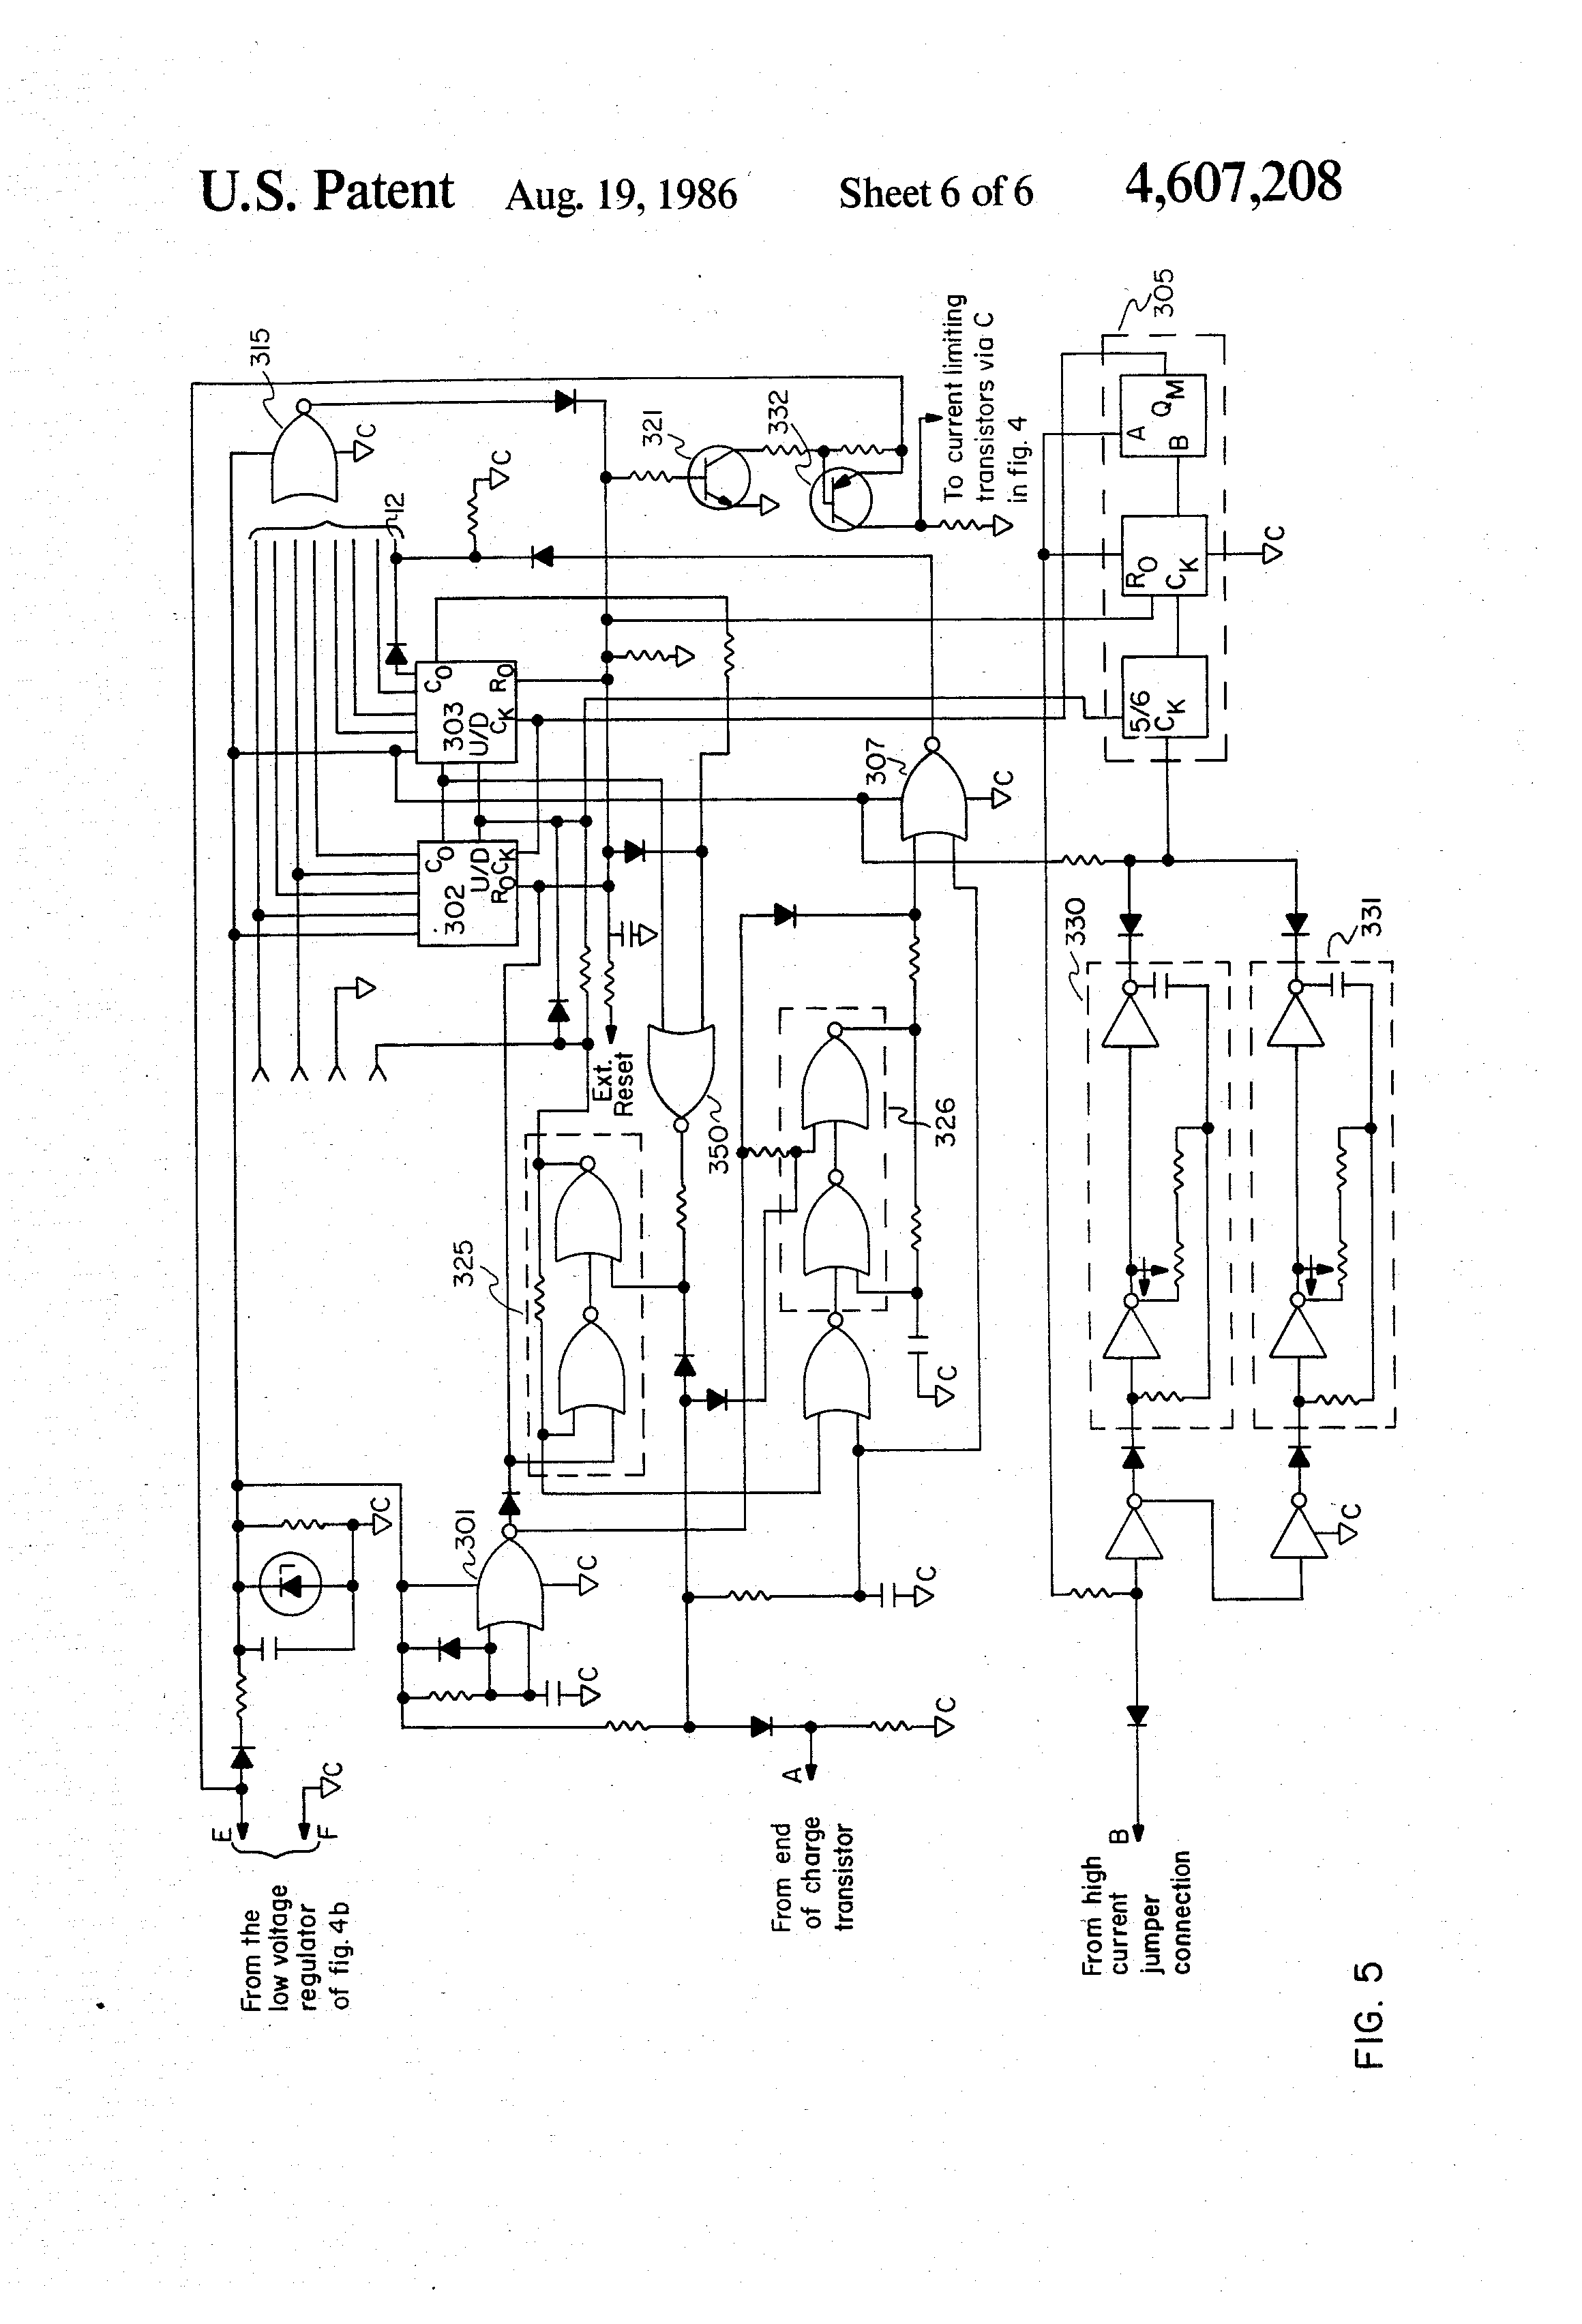 Dayton Battery Charger Wiring Diagram 37 Images Nimh Circuit Also Schumacher Patent Us4607208 Google Patents